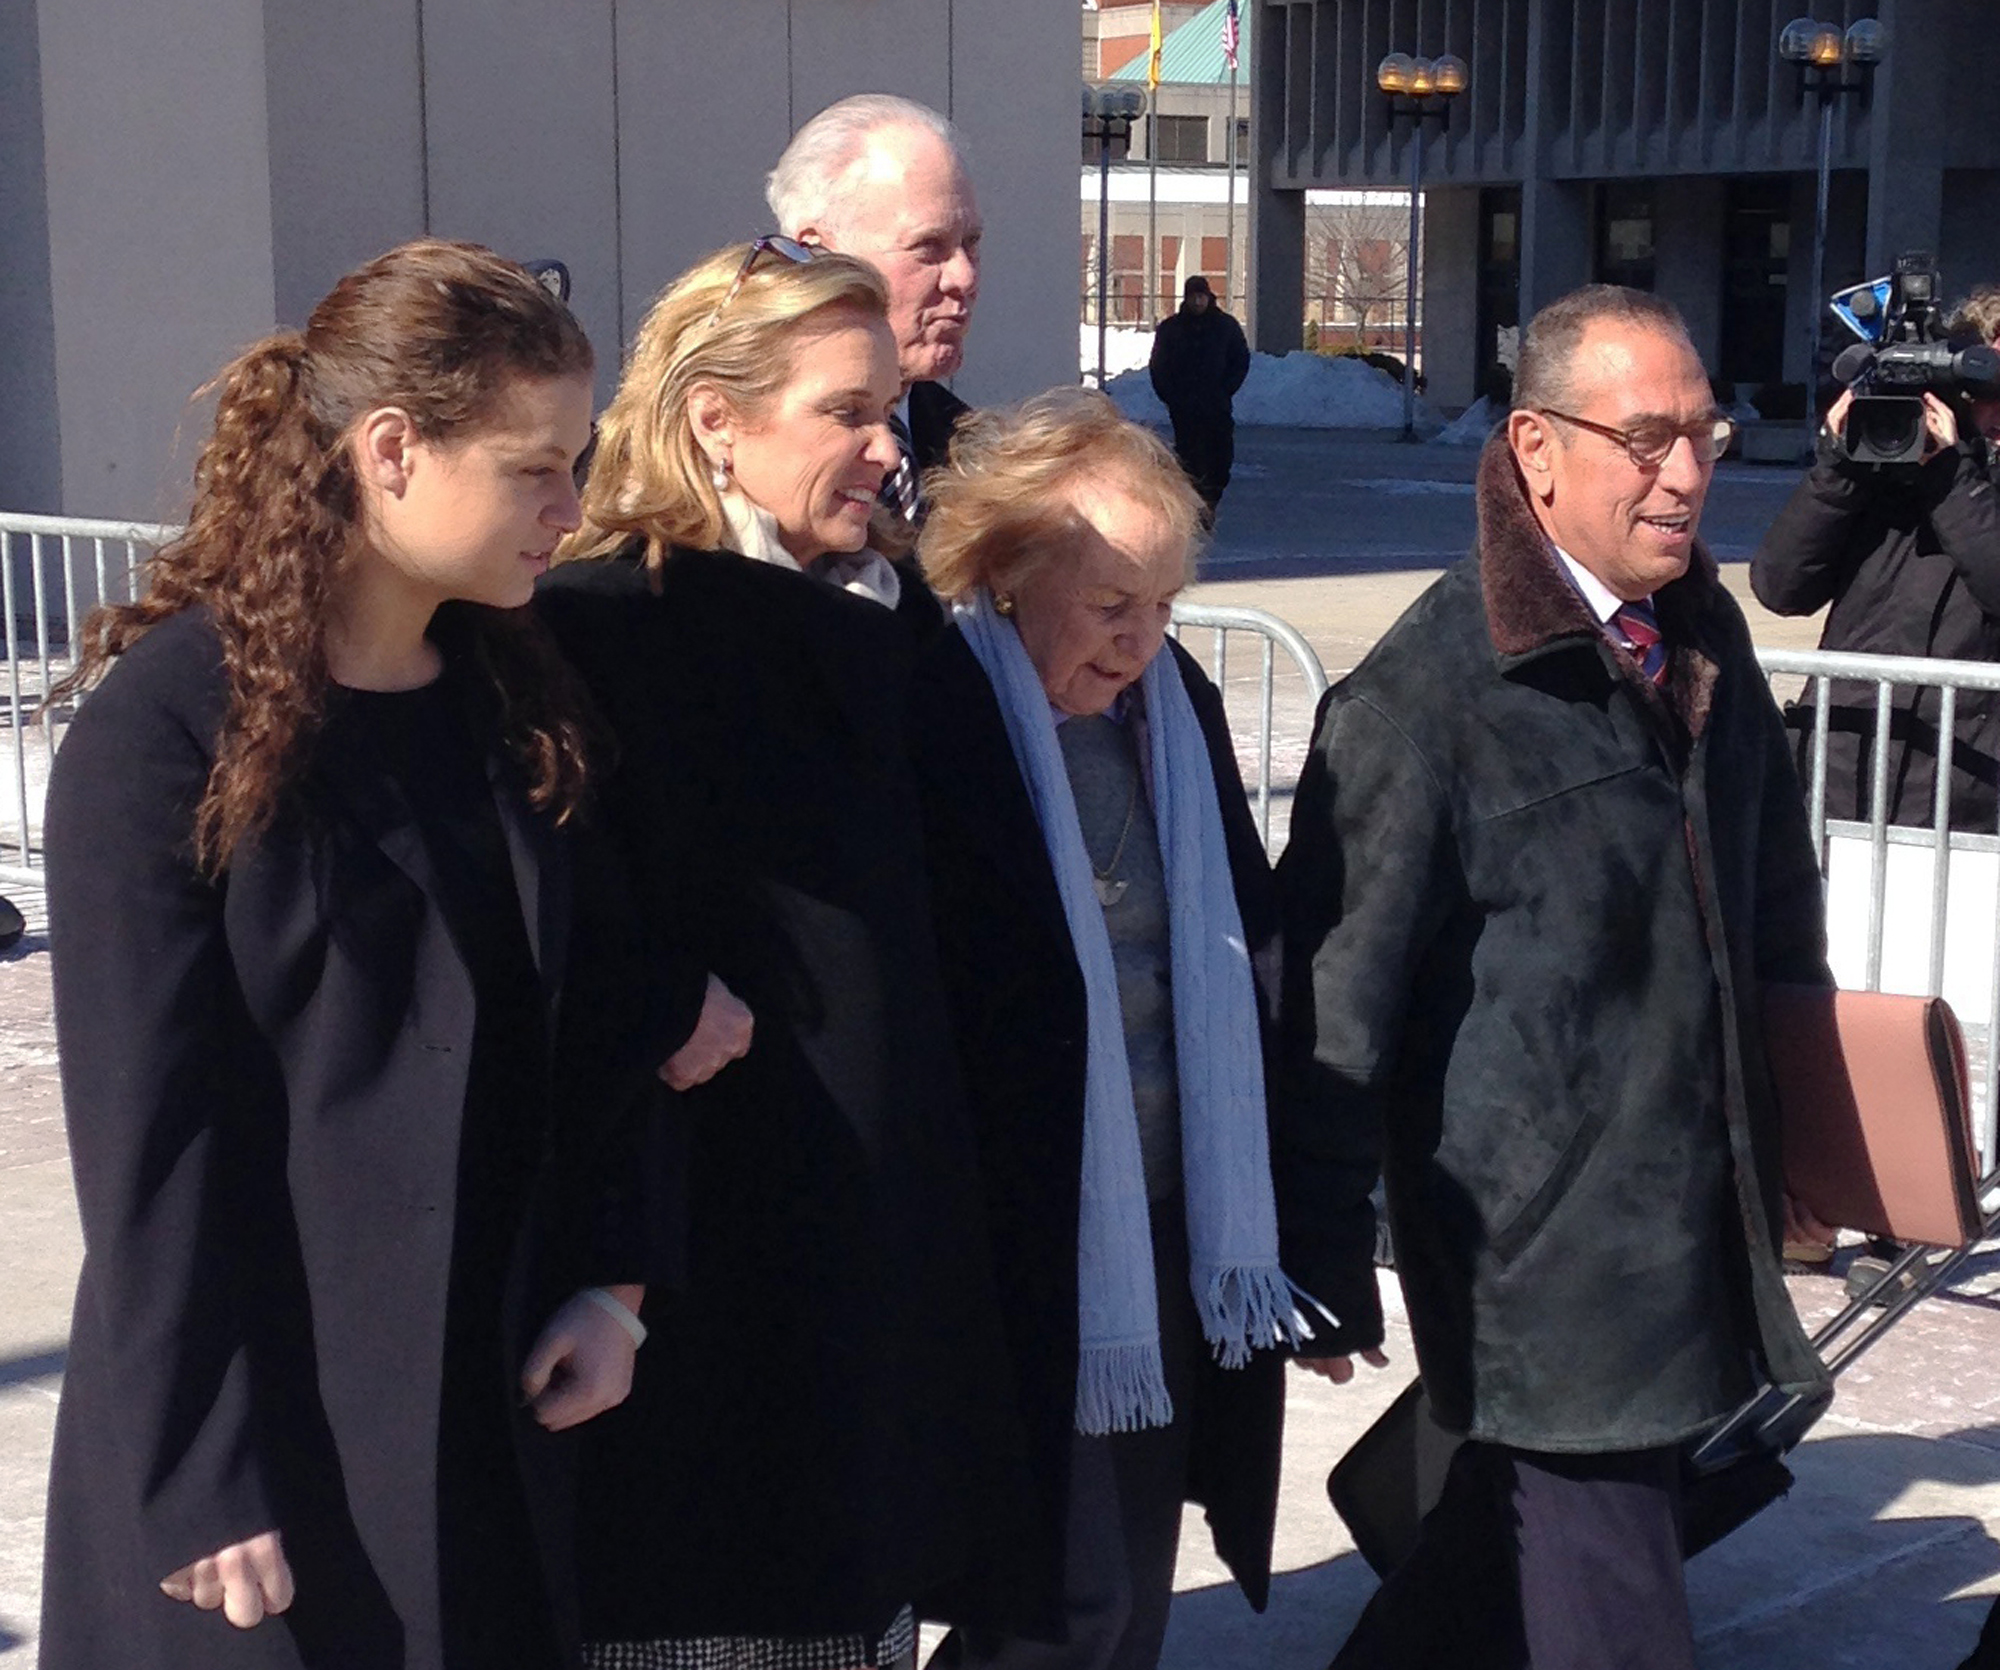 Kerry Kennedy, second from left, walks with her mother, Ethel Kennedy, third from left, as she leaves the Westchester County Courthouse, Friday, Feb. 28, 2014 in White Plains, N.Y.